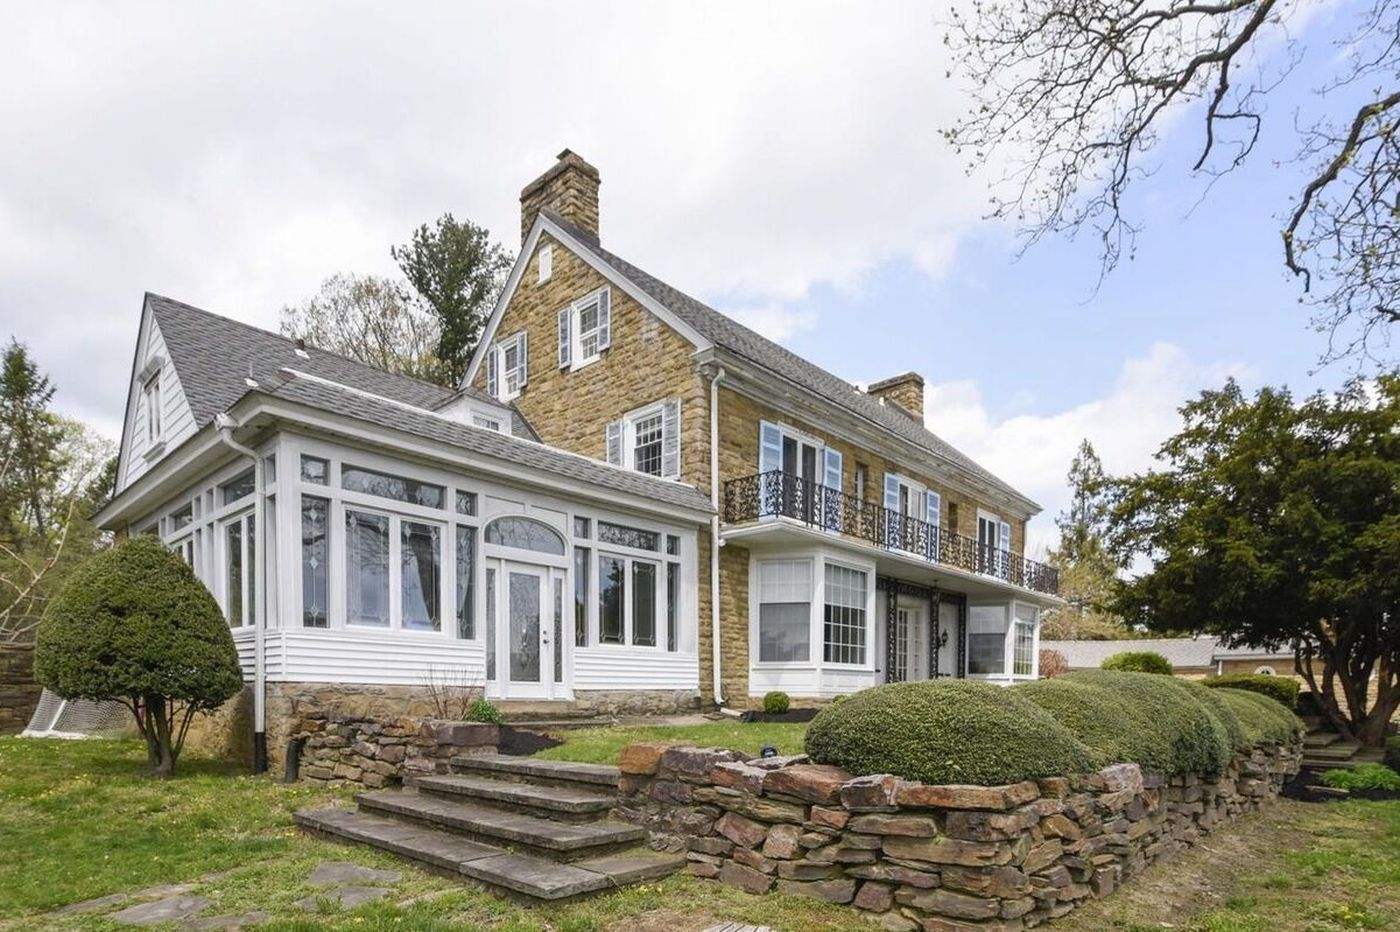 On the market: Former home of well-known editor of Saturday Evening Post for $795,000